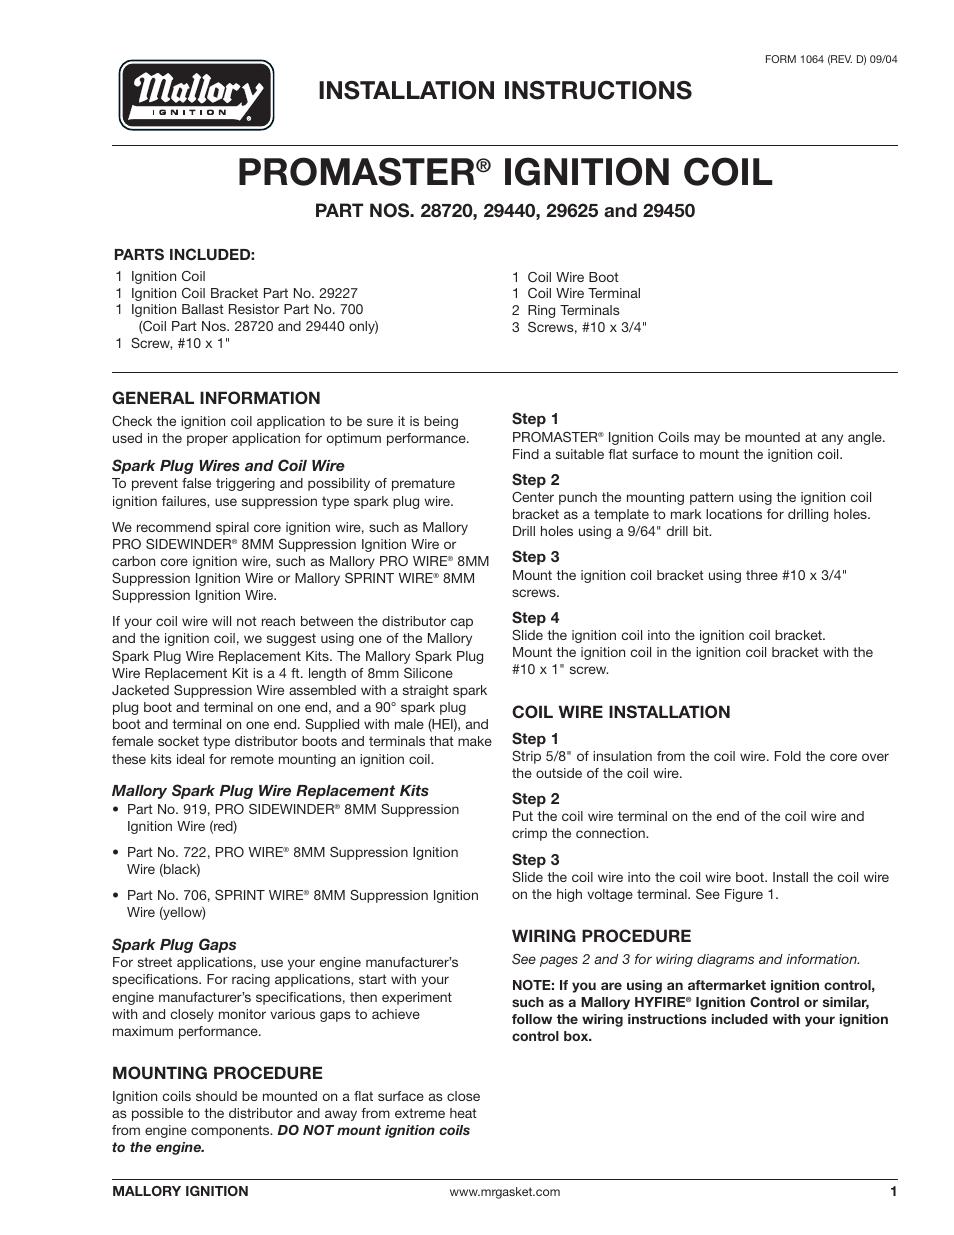 Mallory Ignition Mallory PROMASTER IGNITION COIL 29440_29450_29625_29450  User Manual | 12 pages